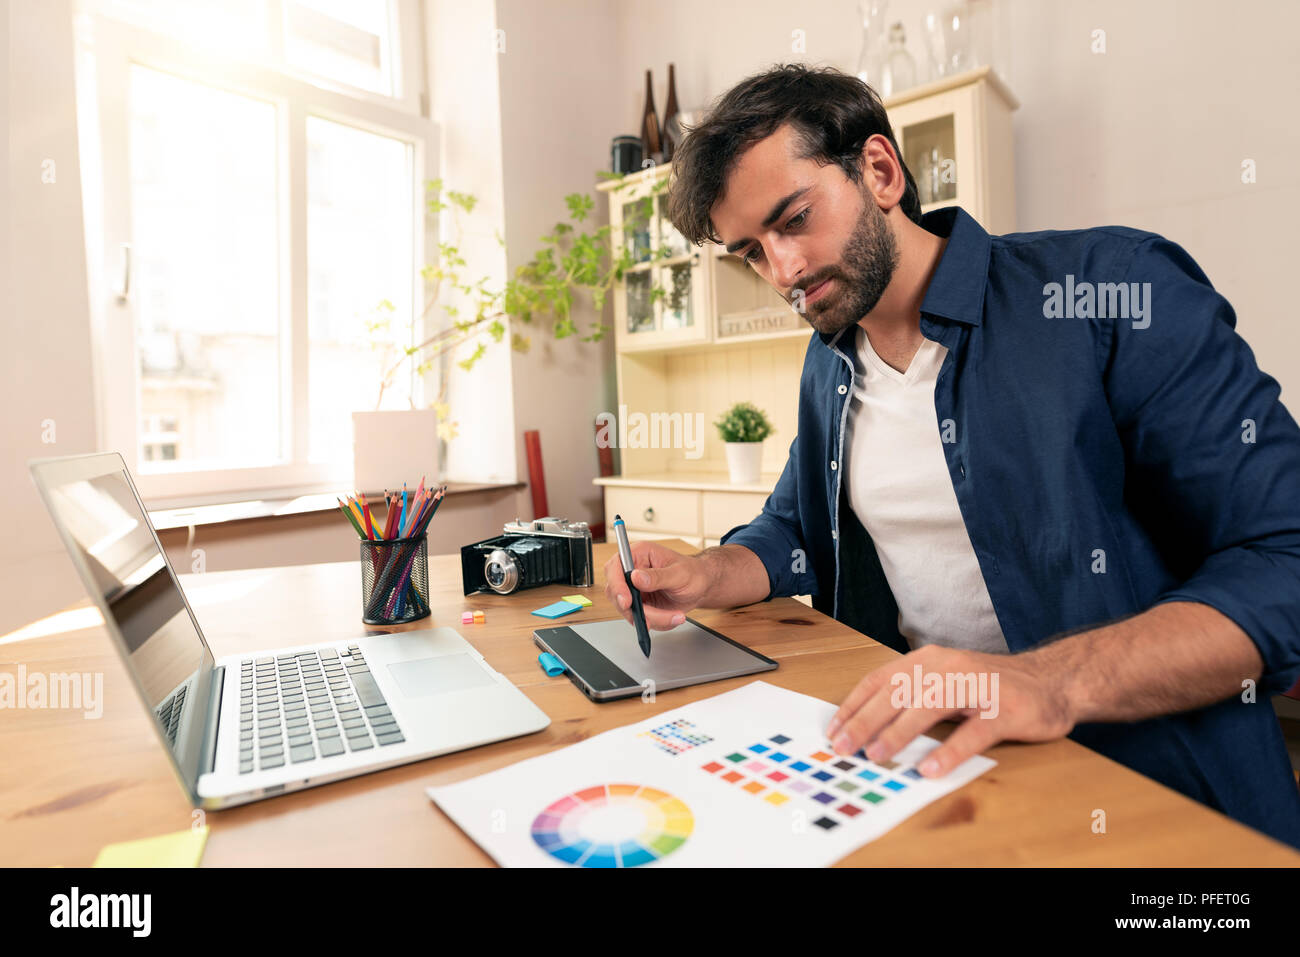 Graphic designer working on digital tablet. Freelancer working at home. - Stock Image